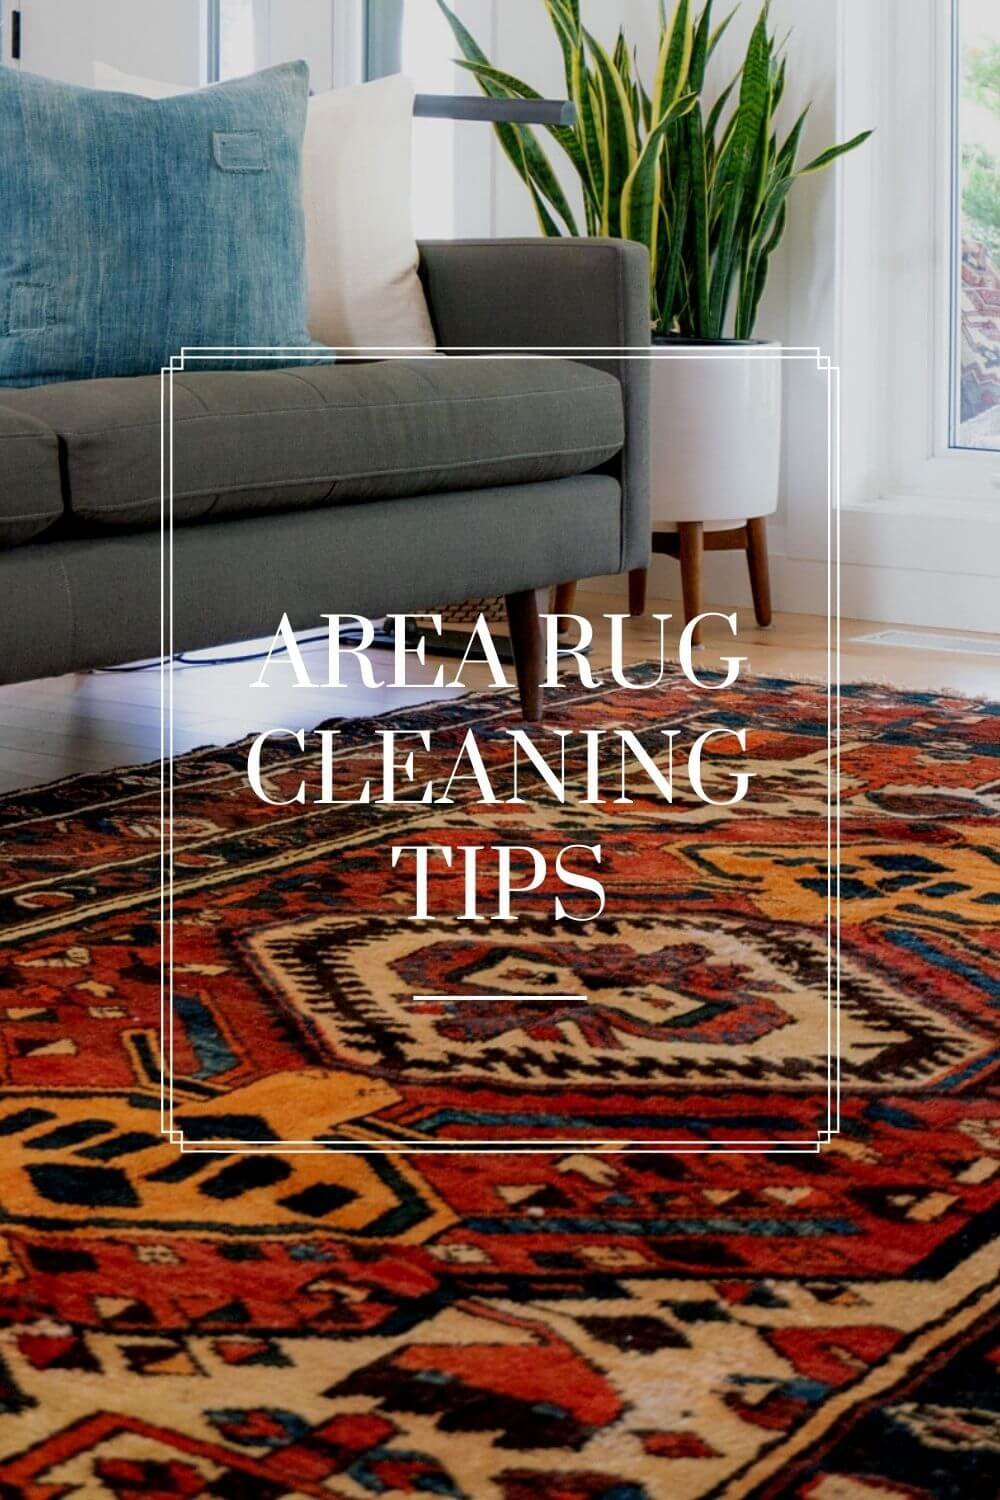 Area Rug Cleaning Tips by Fashion Cleaners